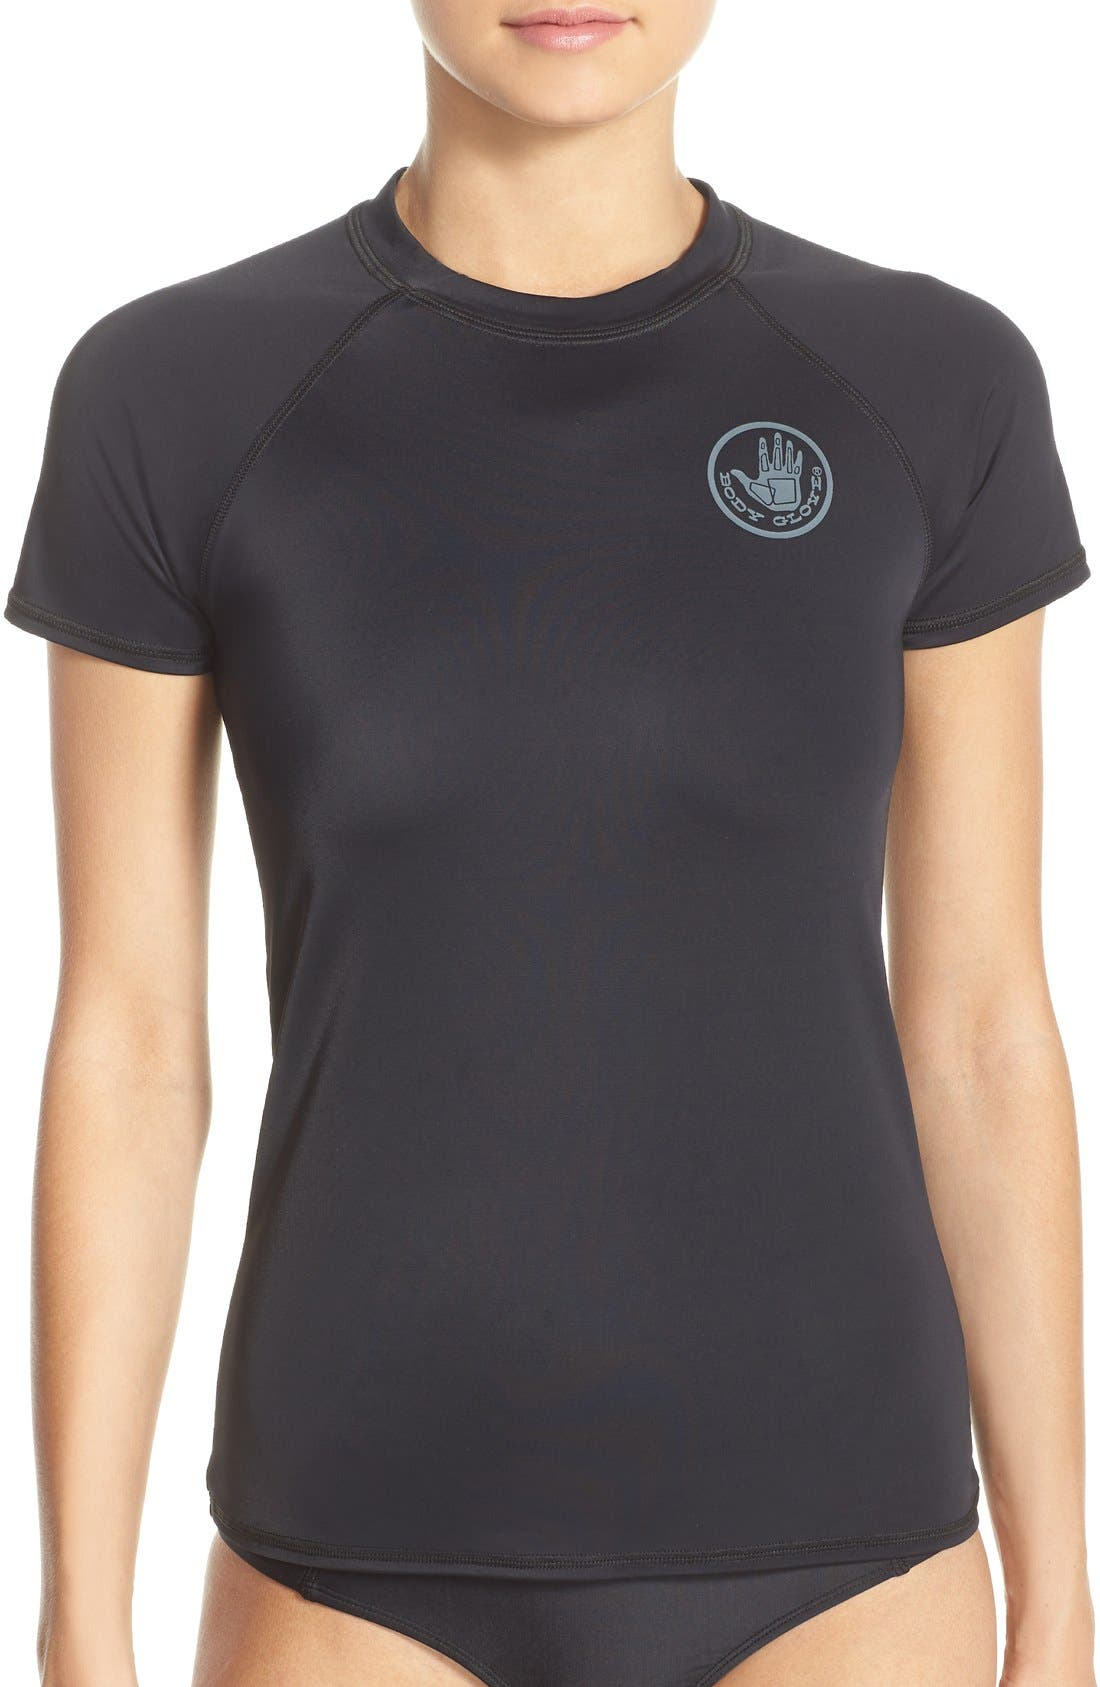 'Smoothies in Motion' Short Sleeve Rashguard,                             Main thumbnail 2, color,